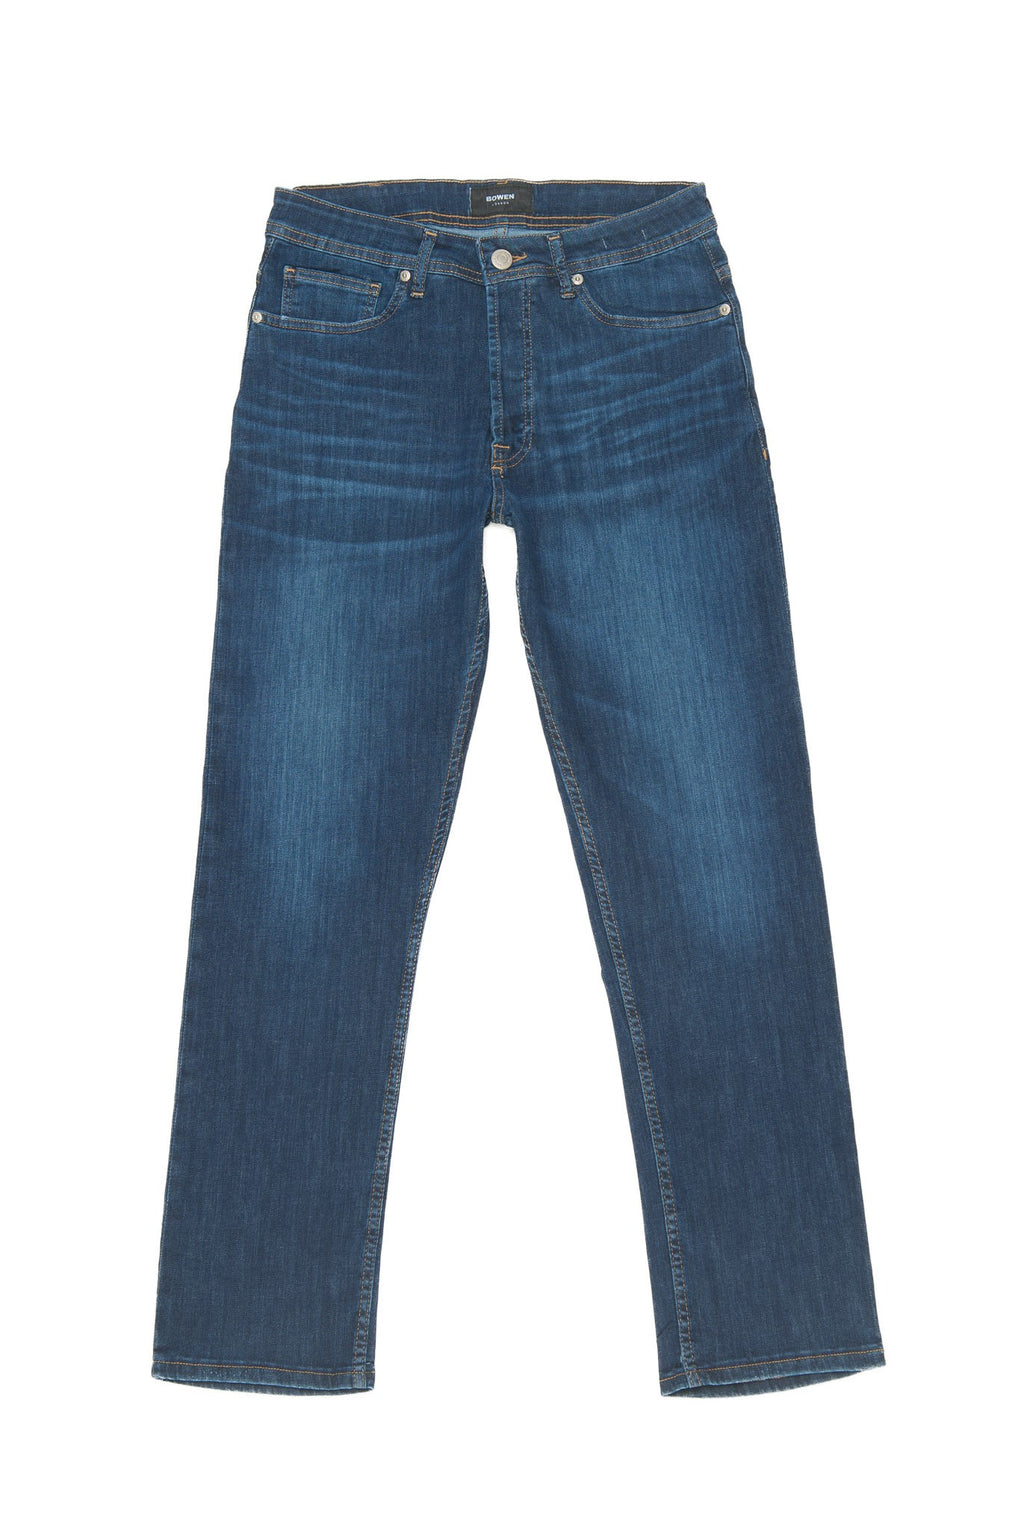 Jean Brooklyn Mid Blue